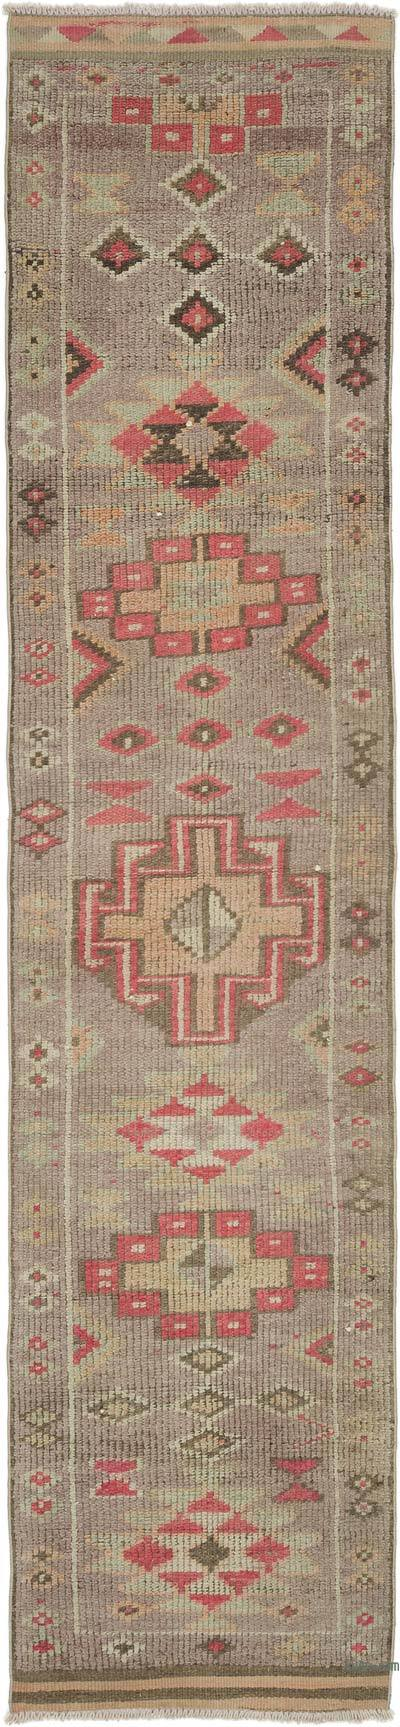 "Vintage Turkish Runner Rug - 2' 9"" x 11' 10"" (33 in. x 142 in.)"